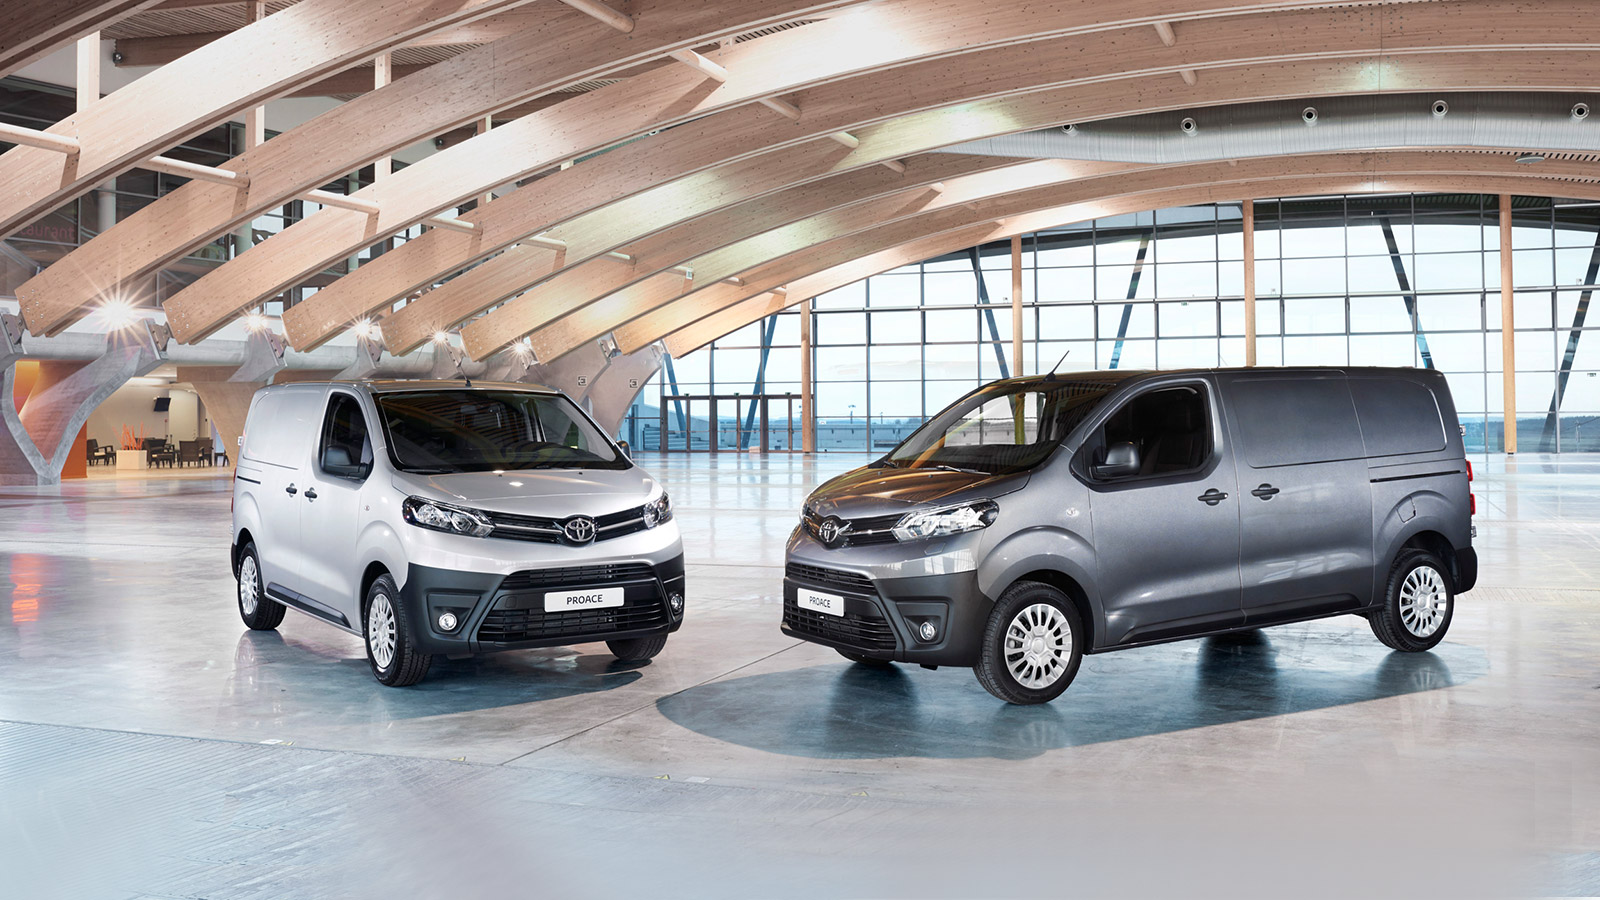 nouveau toyota proace 2016 utilitaire toyota. Black Bedroom Furniture Sets. Home Design Ideas